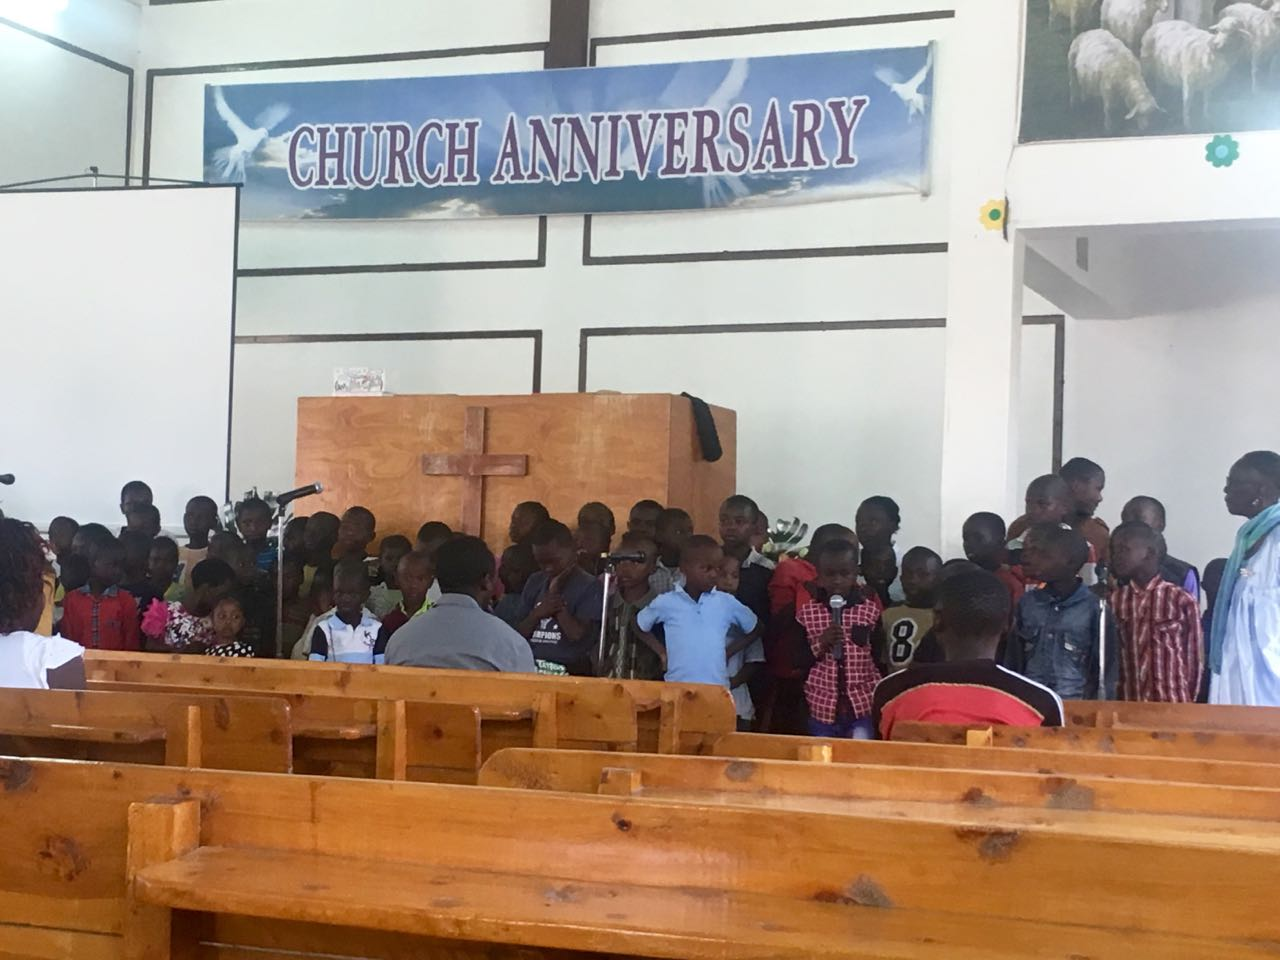 Sunday school kids singing for the 16 year anniversary of the church